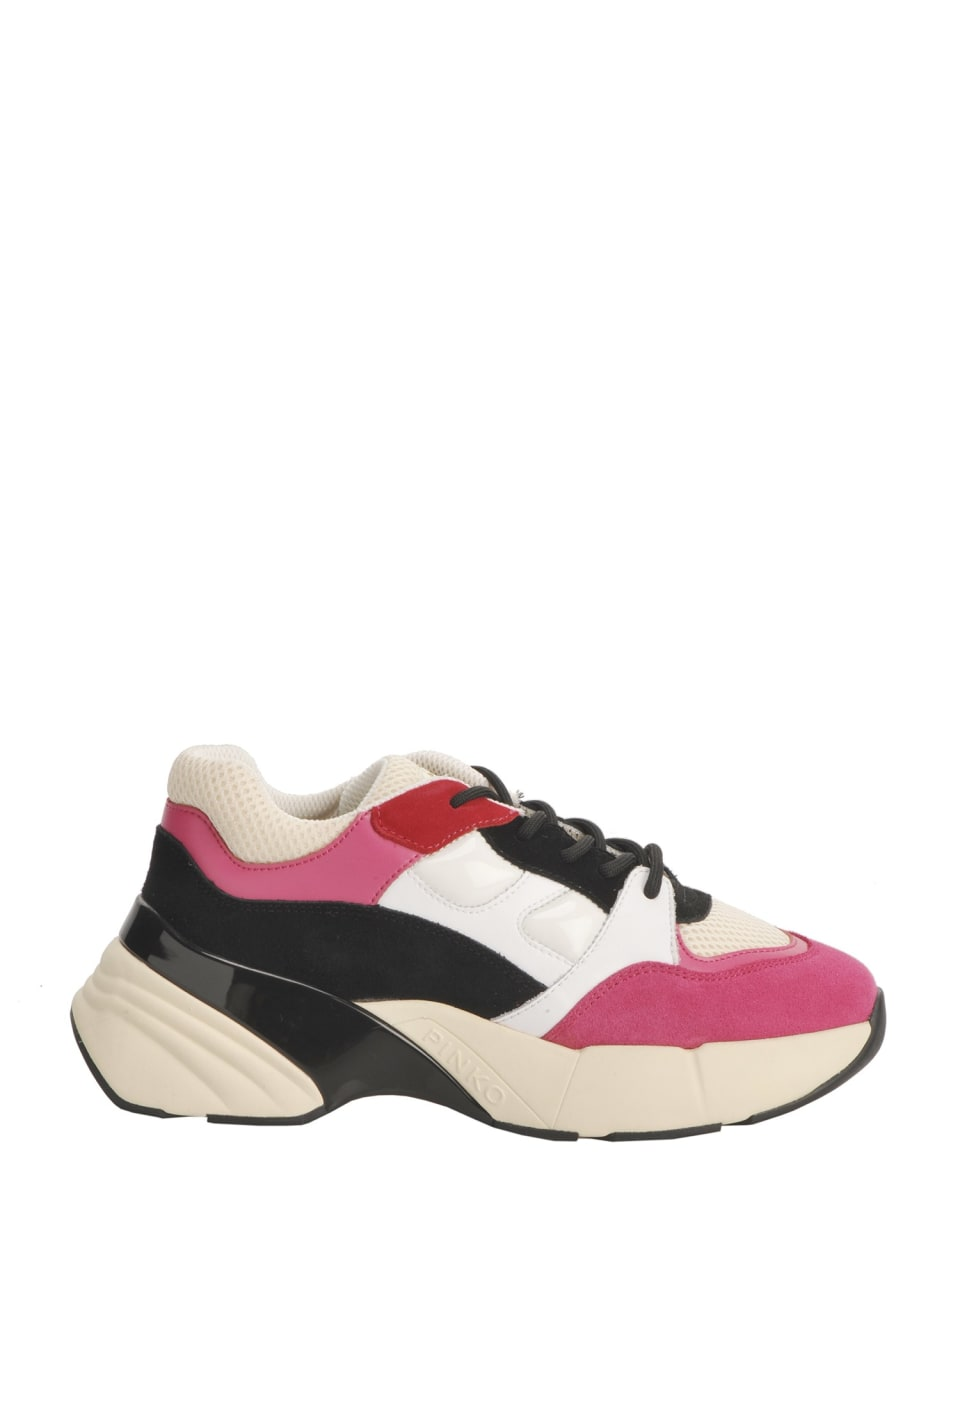 Oversized Color Sneakers - Pinko